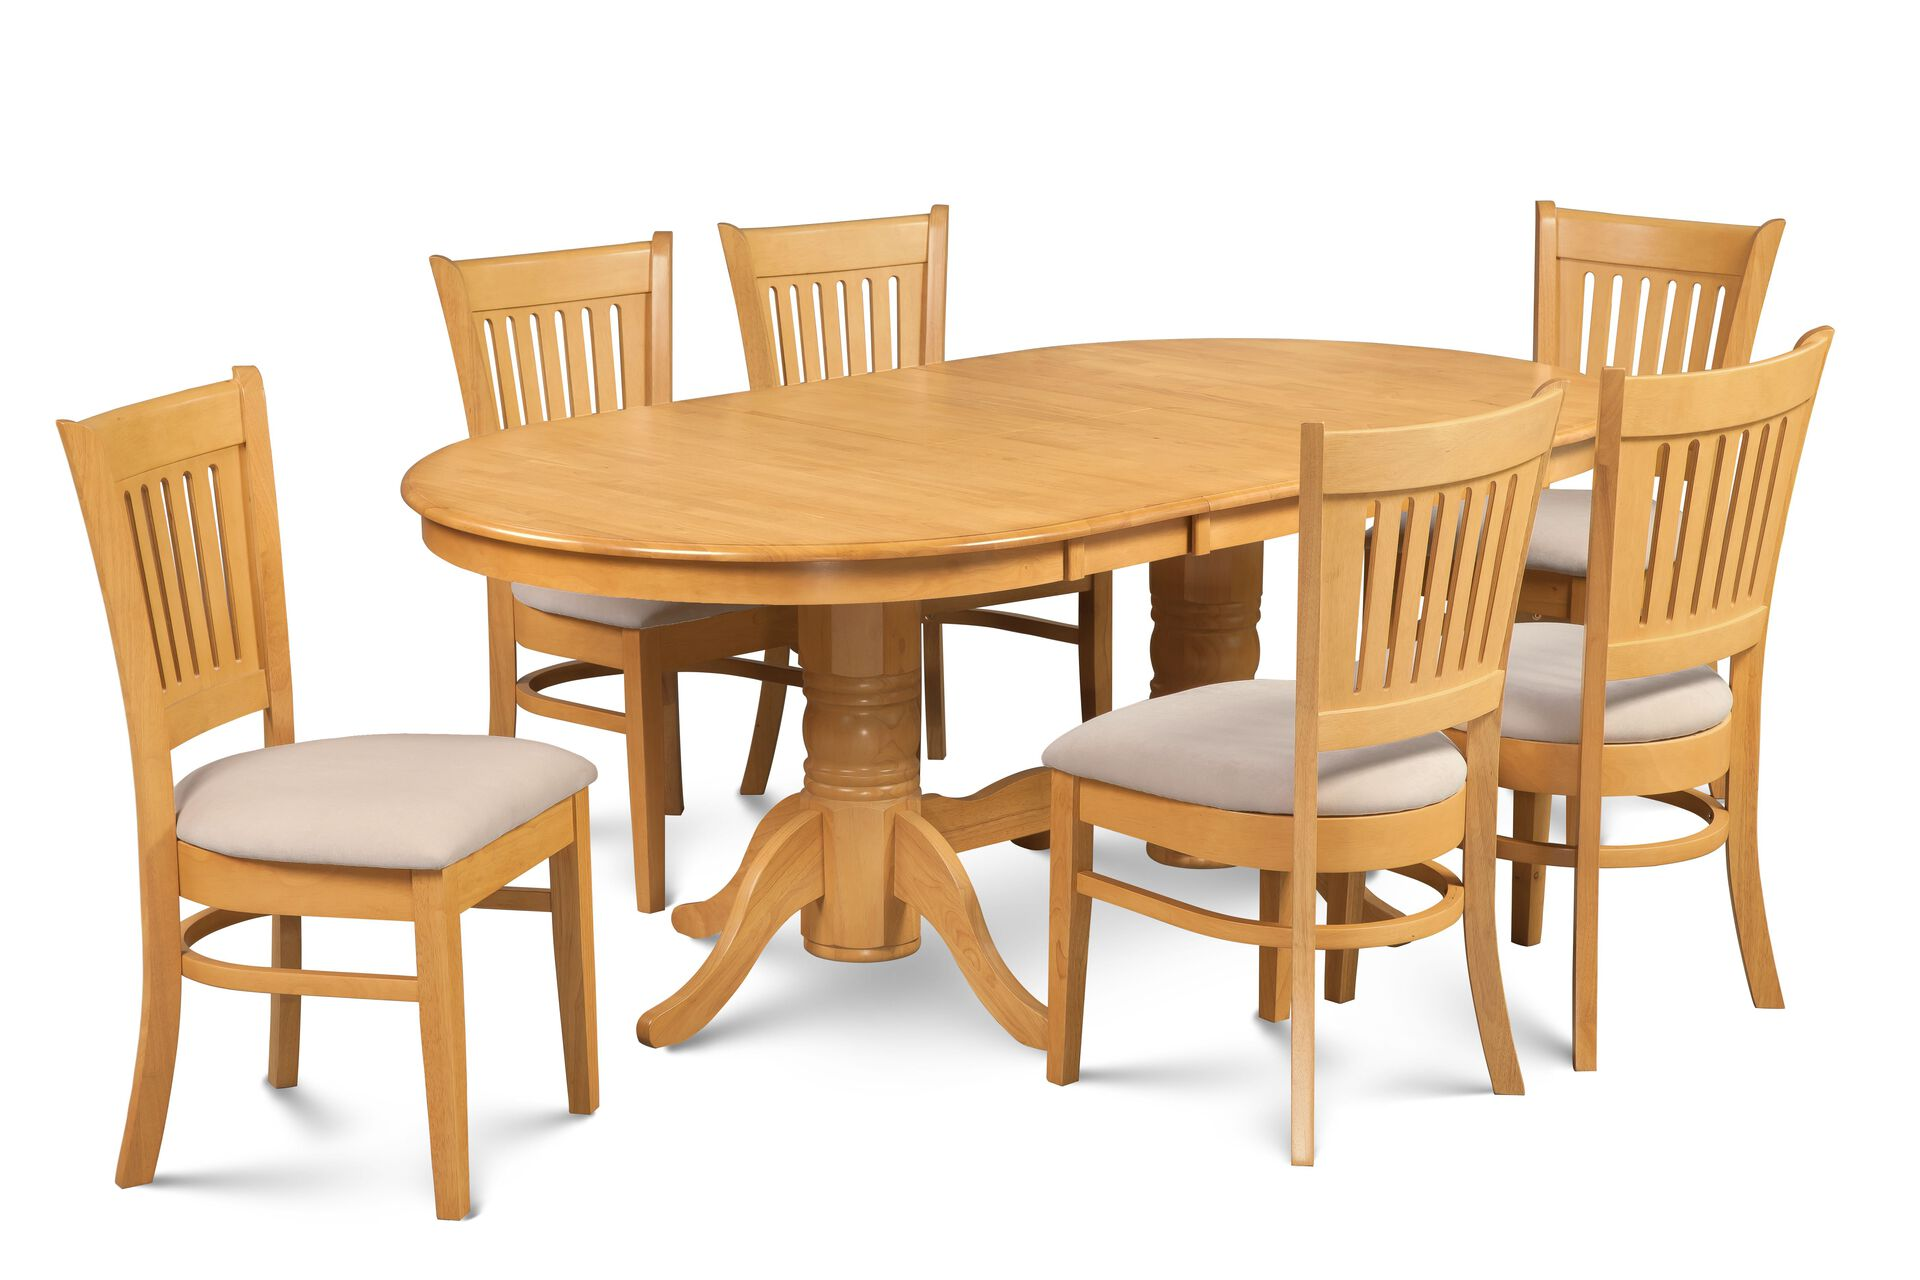 Chair Upholstered Table Dining Set Sets Living